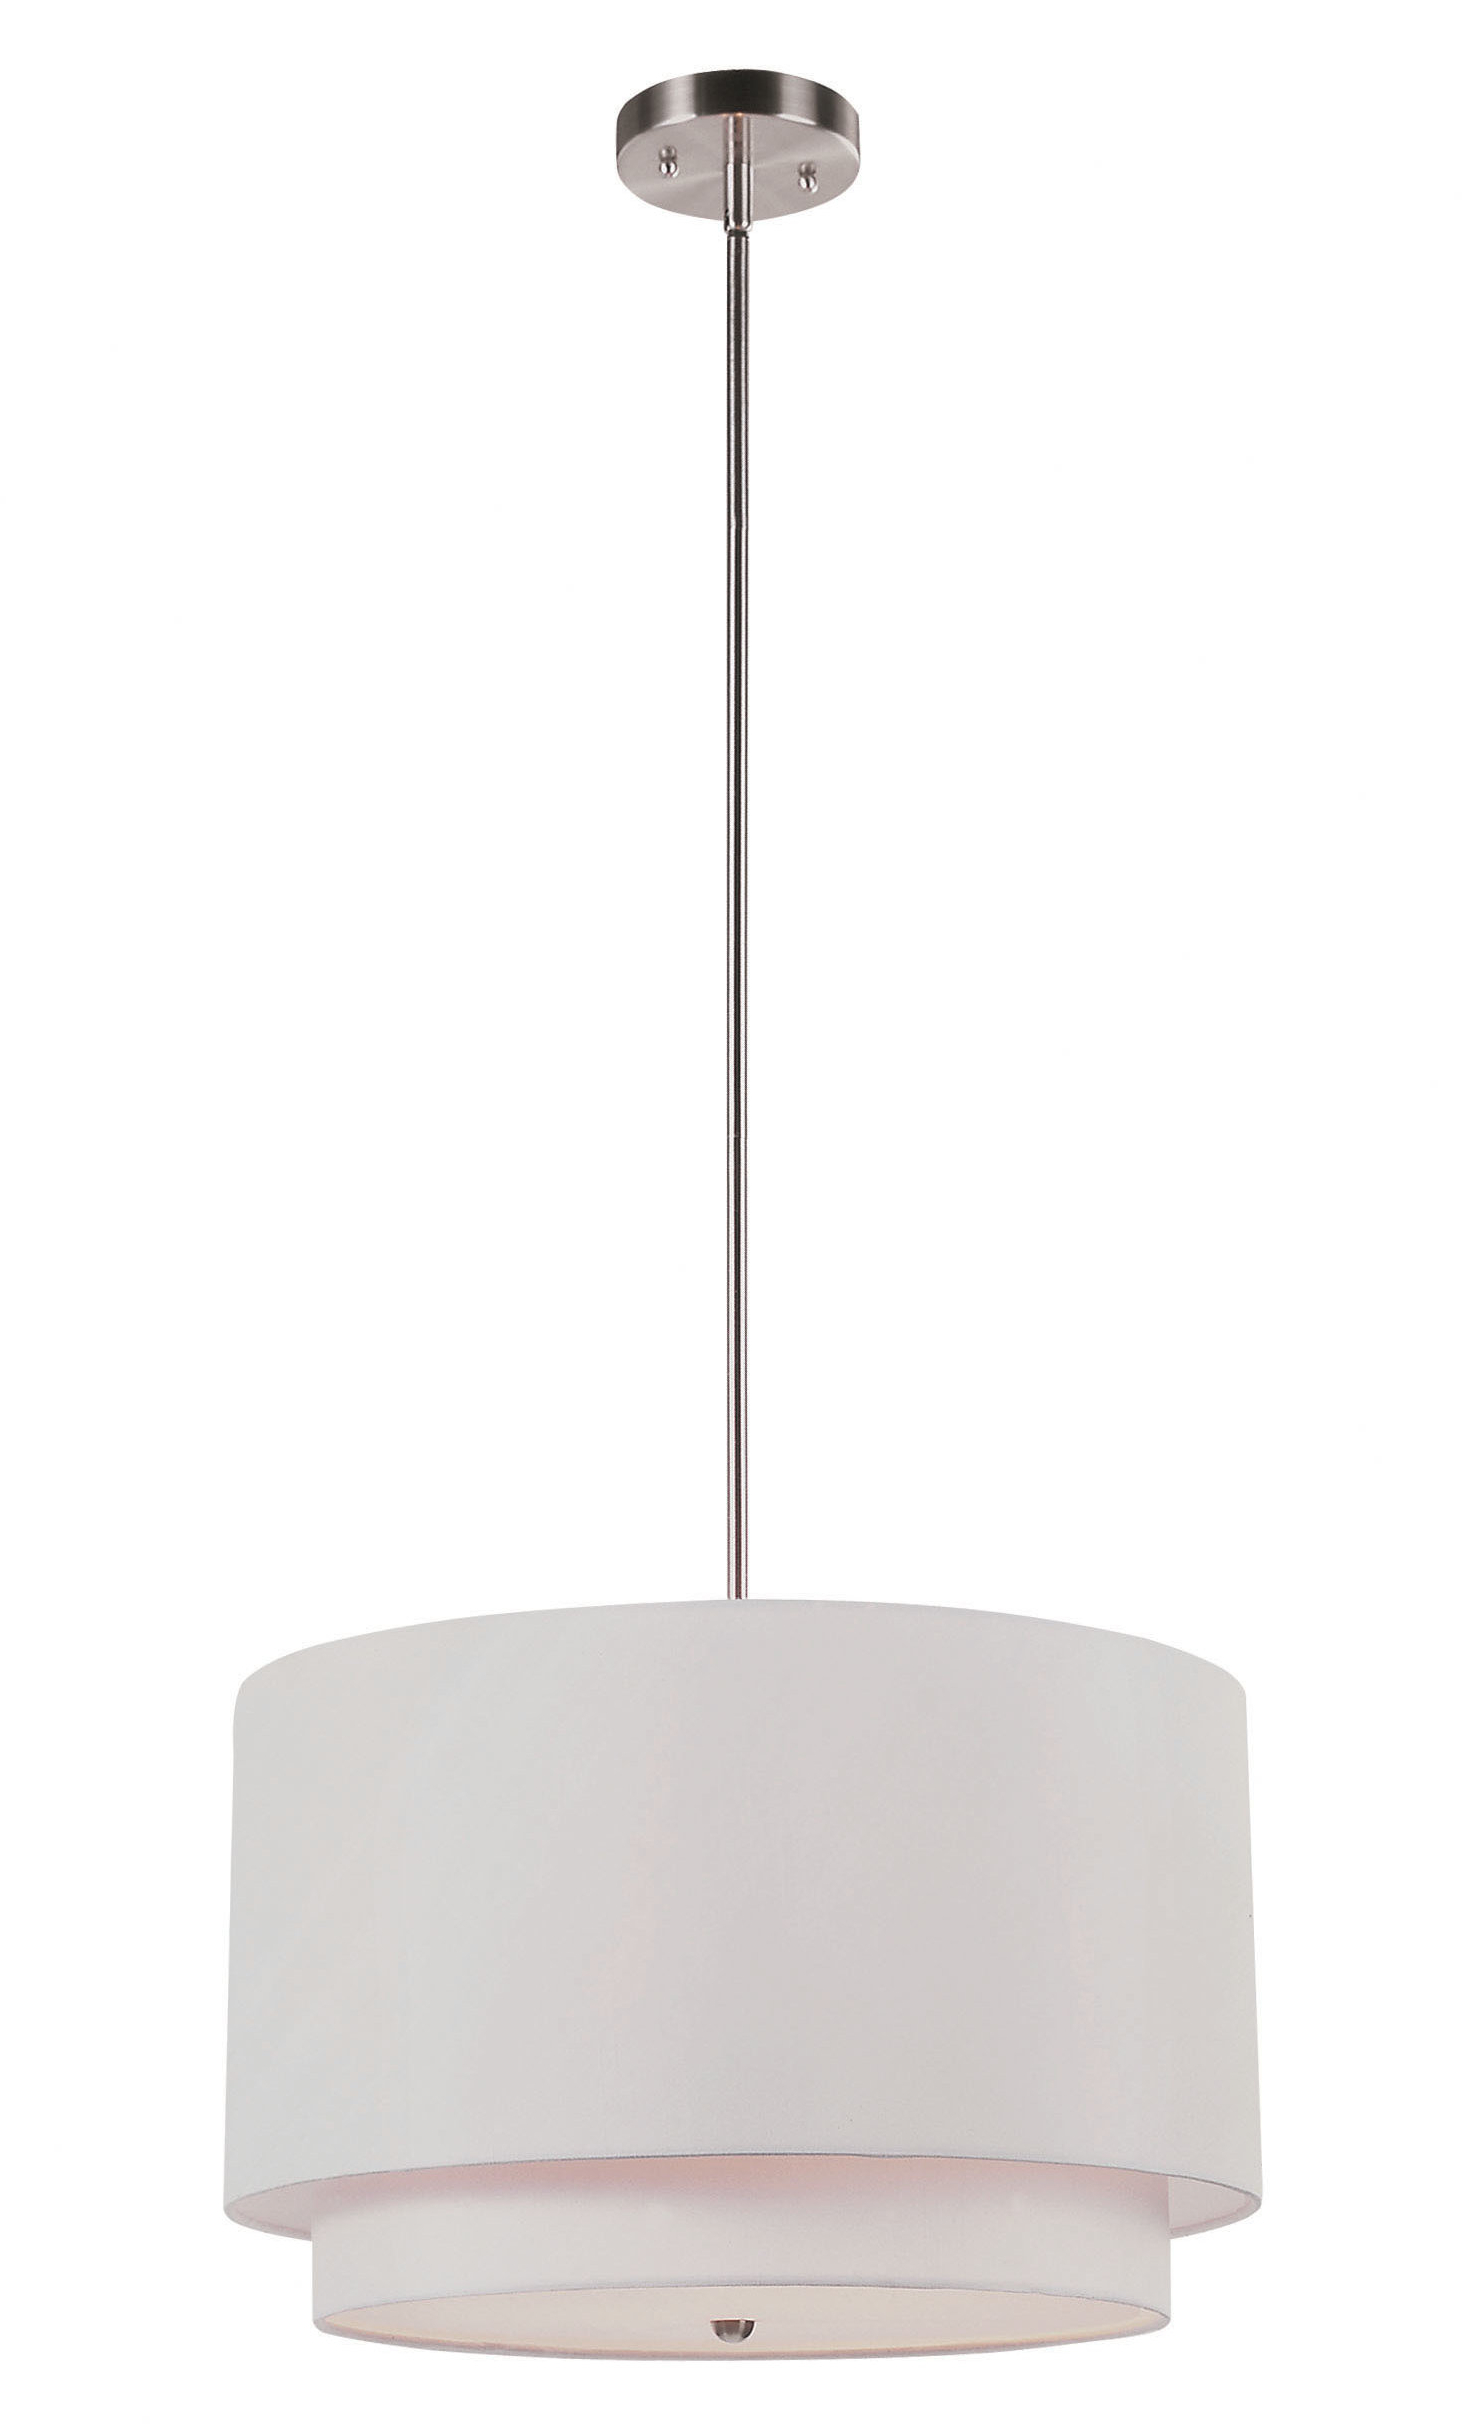 Kasey 3 Light Single Drum Pendants Pertaining To Best And Newest Friedland 3 Light Drum Tiered Pendant (View 12 of 25)